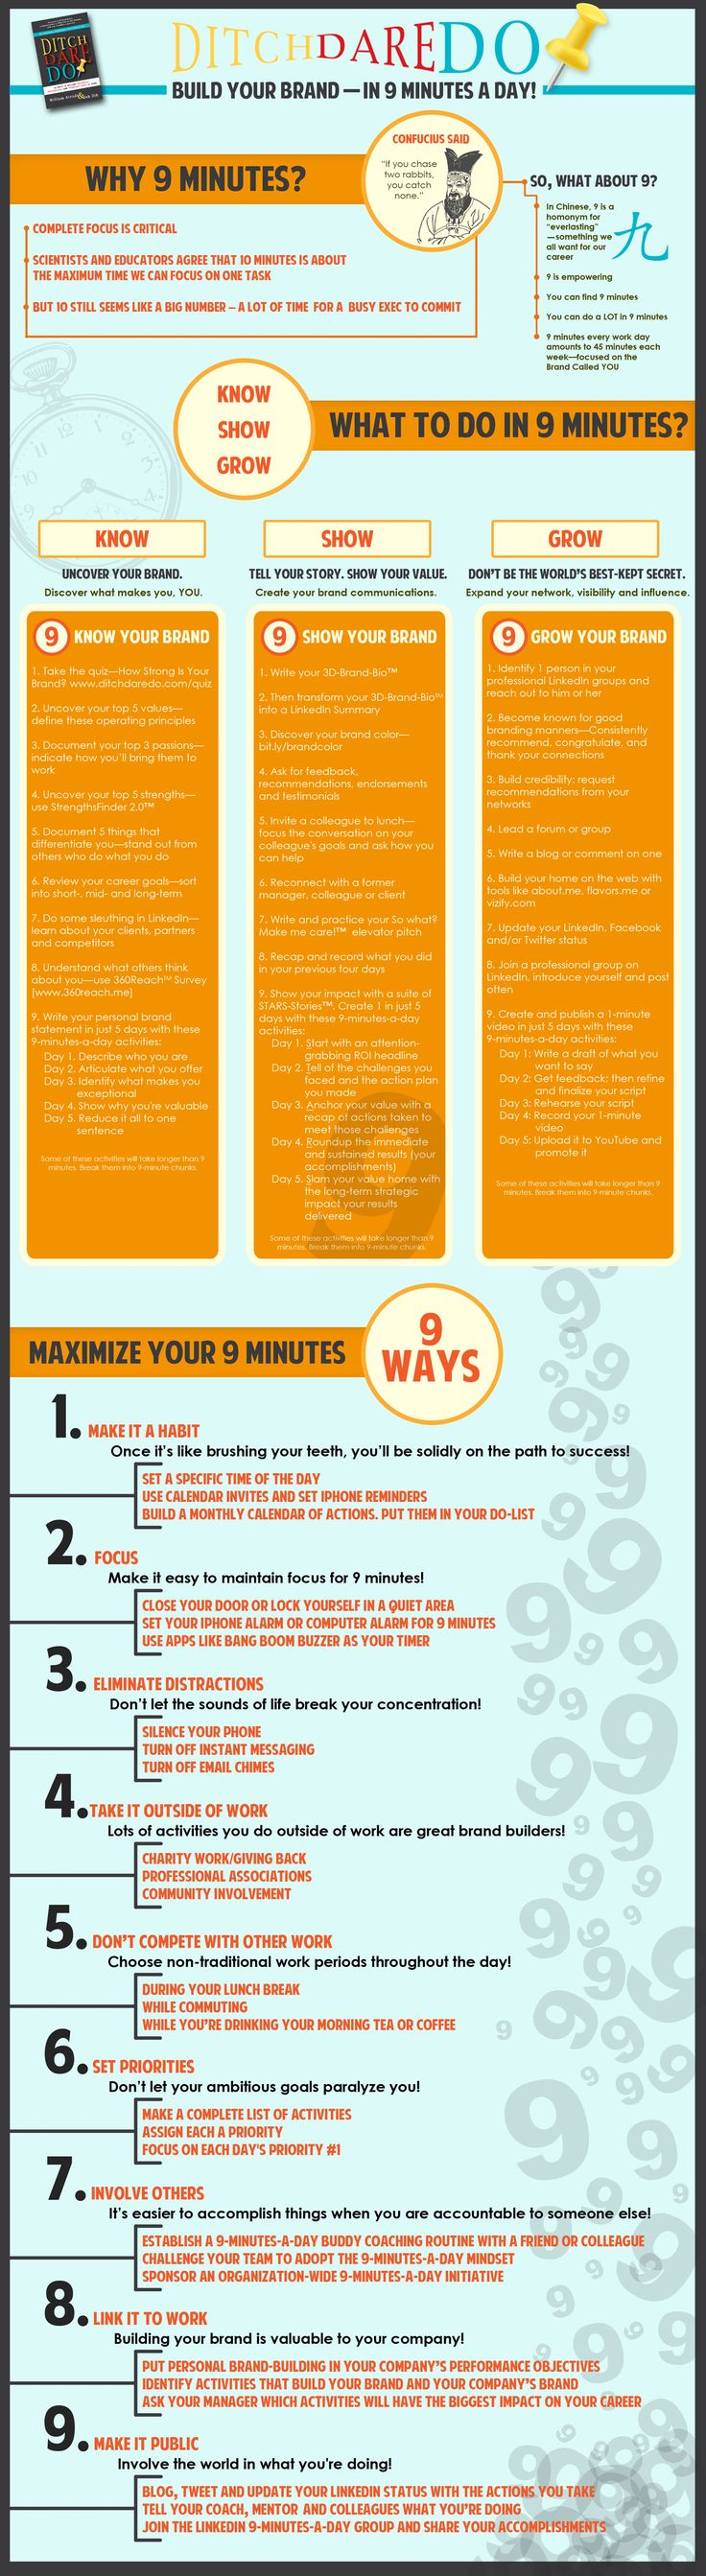 ideas about build your brand marketing how to build your personal brand in 9 minutes each day infographic bit